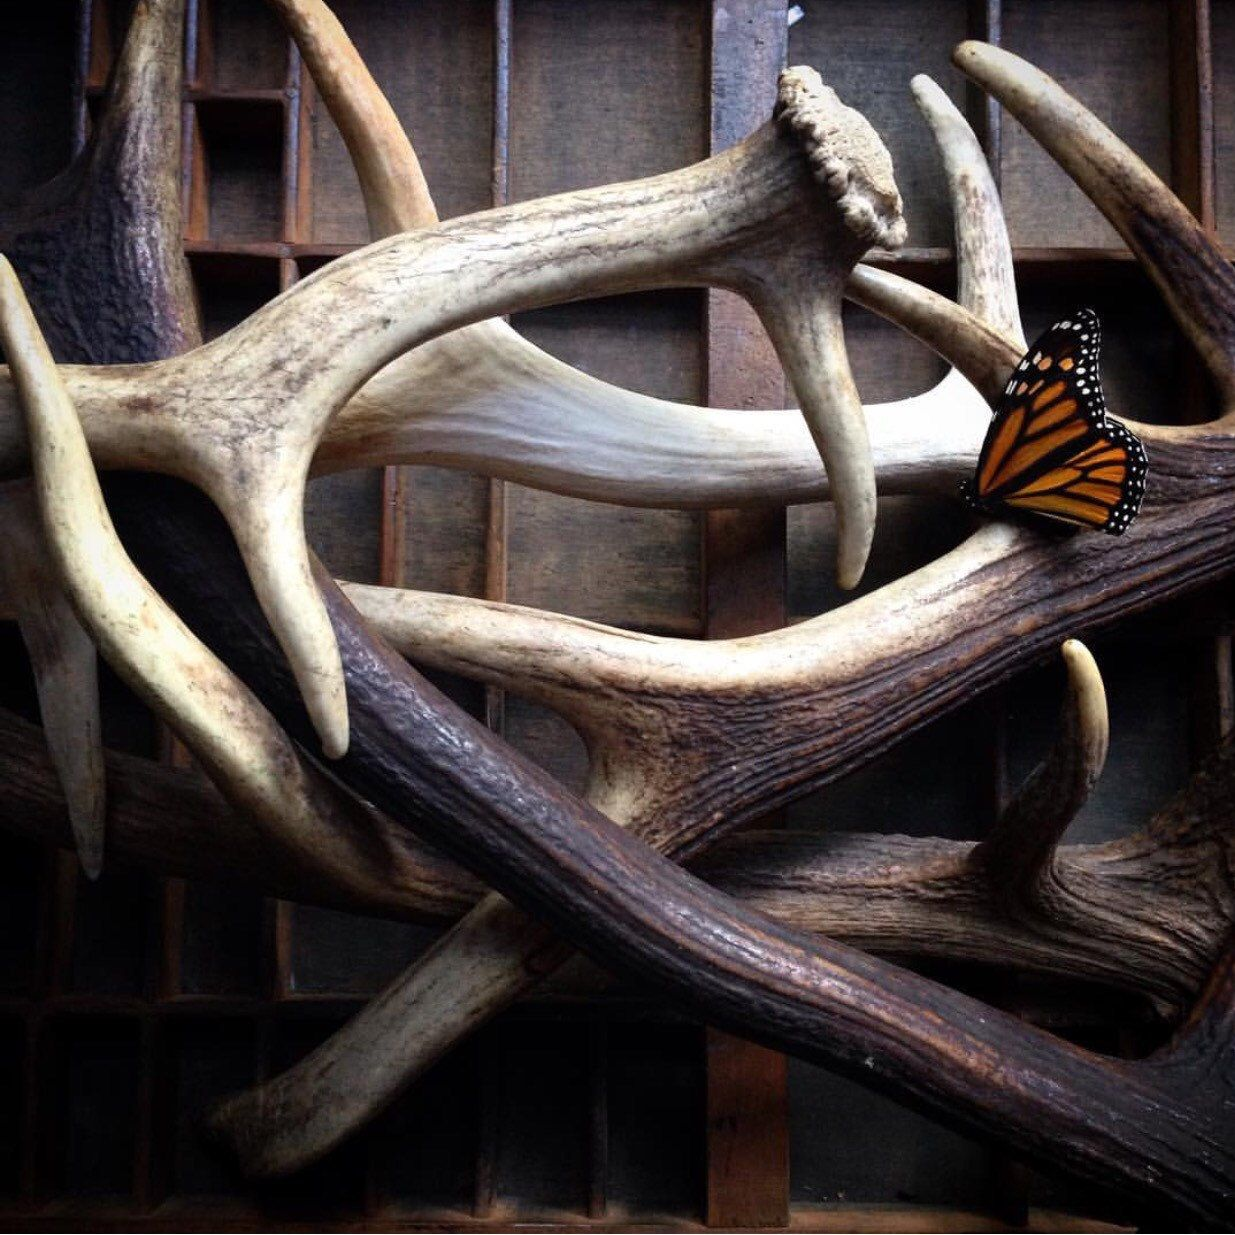 New antlers in stock...